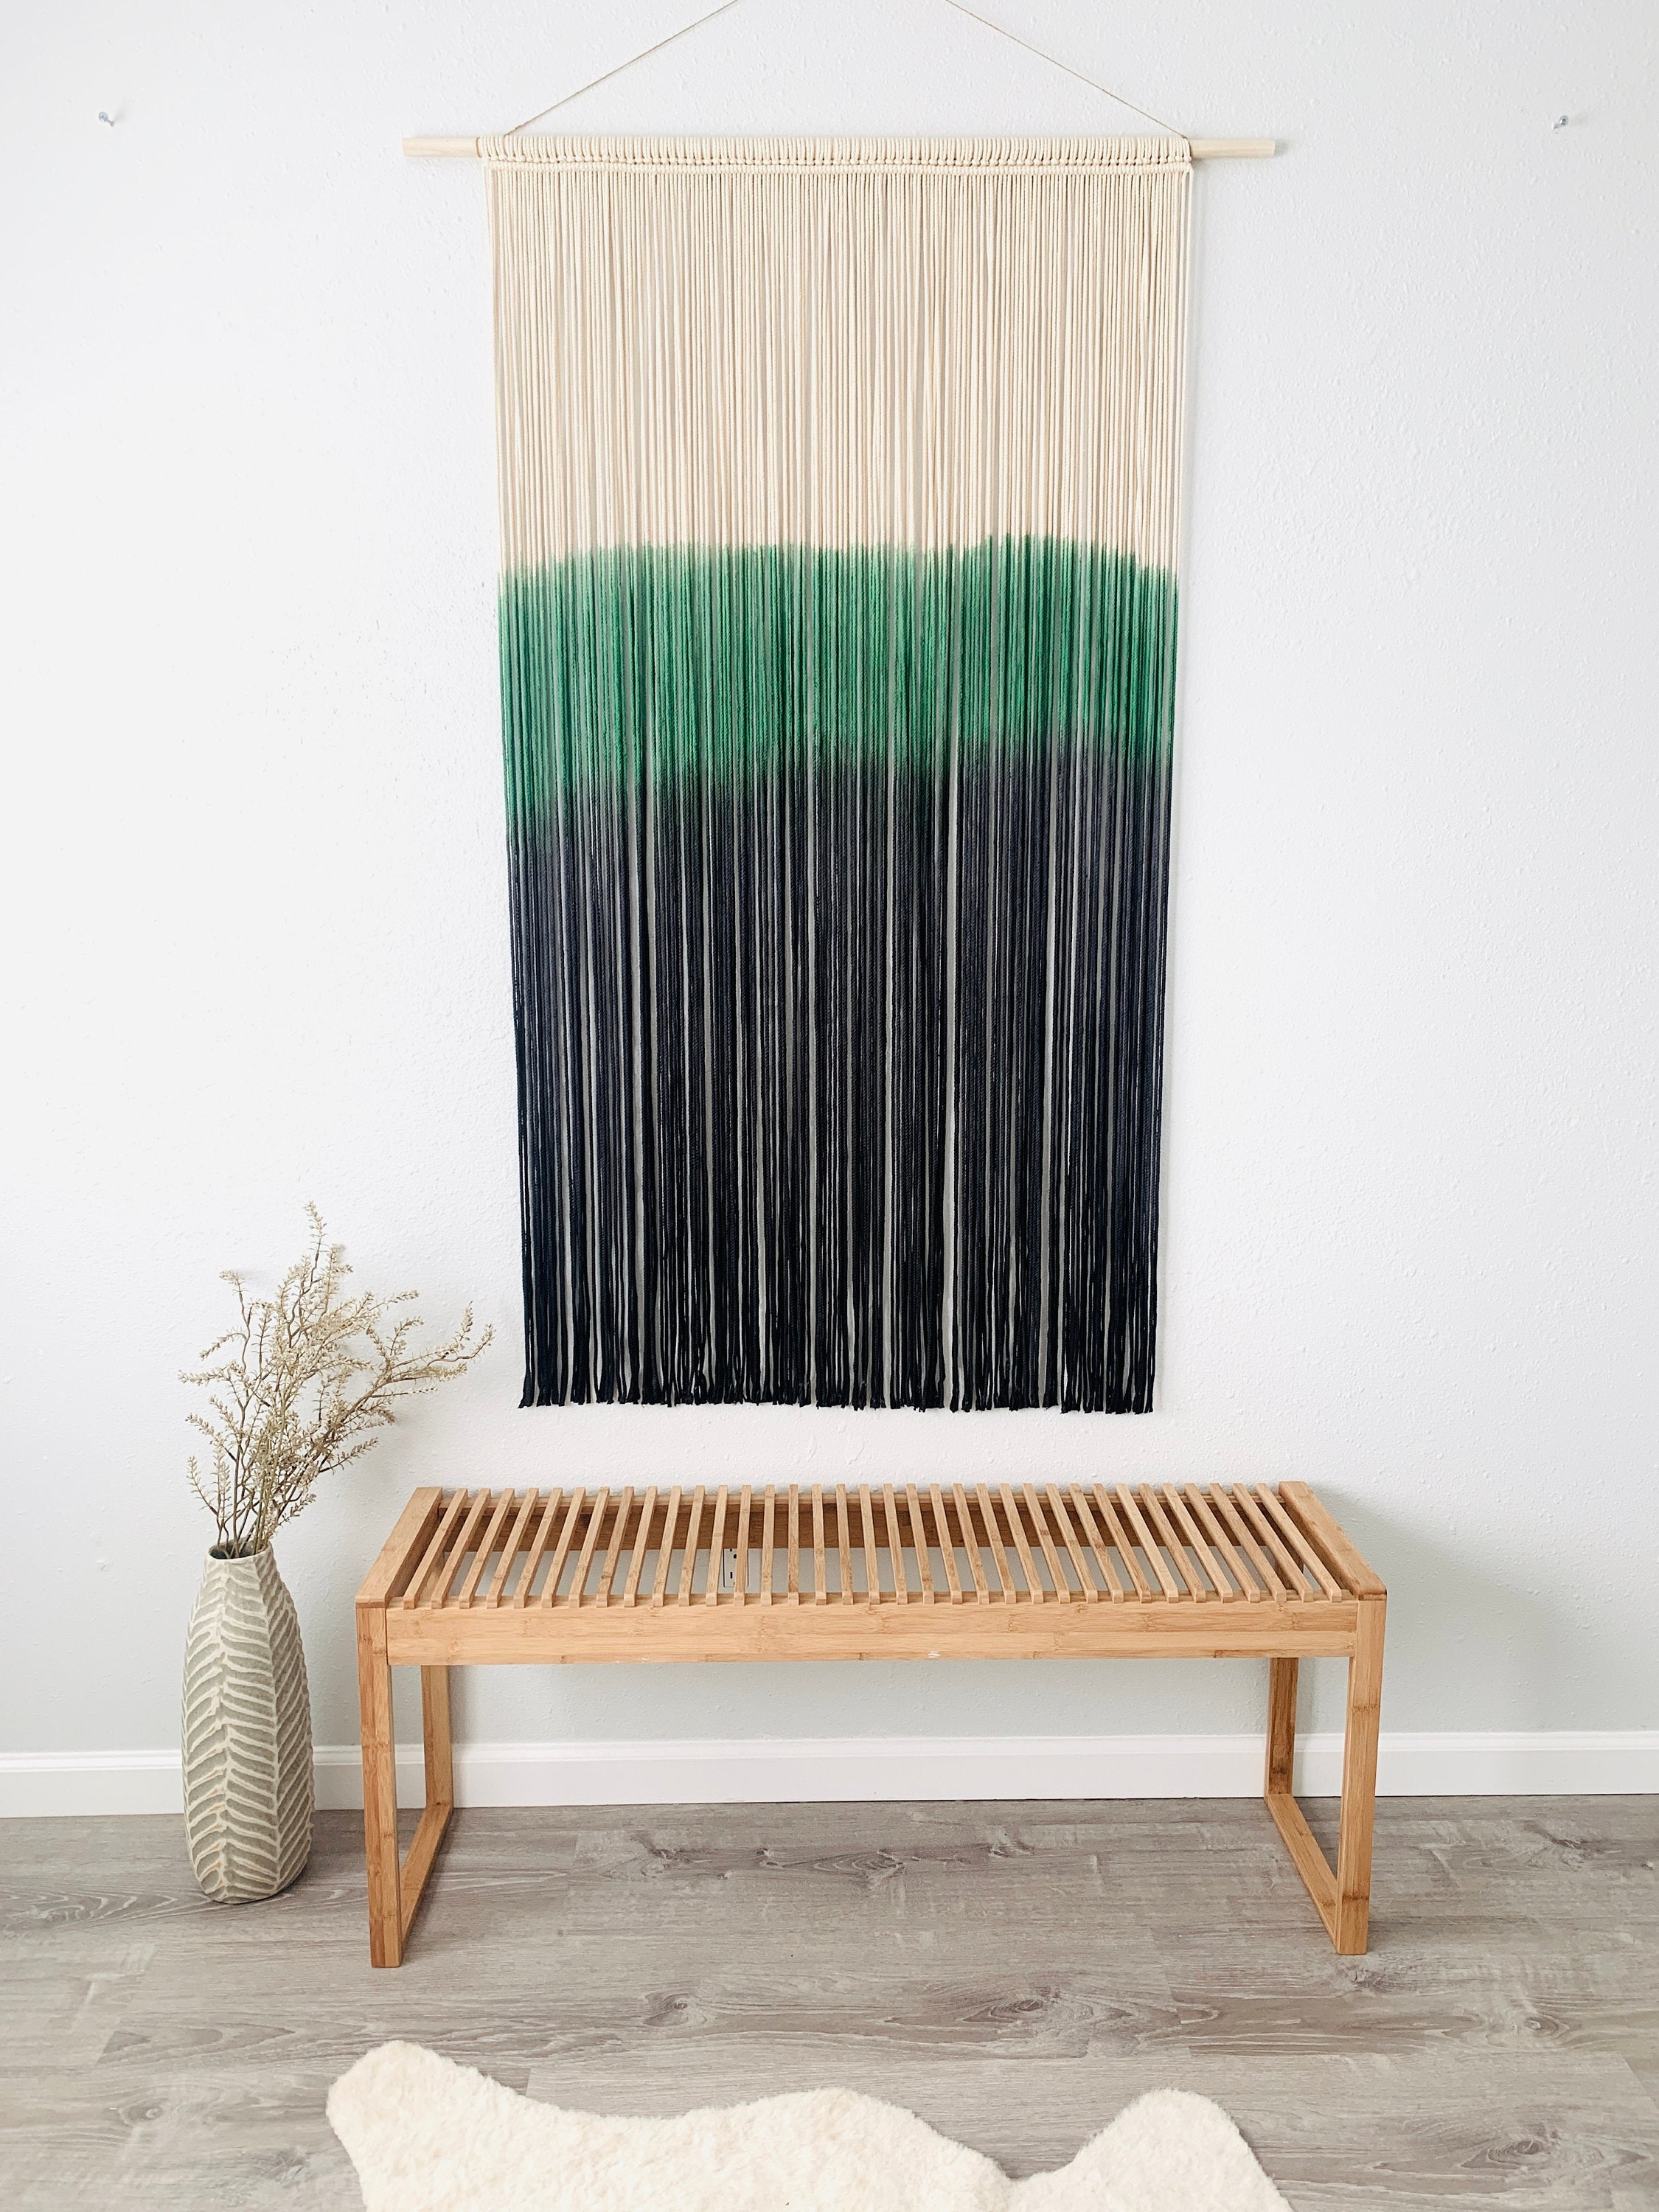 XXL Dyed Macrame Wall Hanging, Woven Tapestry, Large Macrame Wall Hanging, Boho Decor, Fiber Art Wall Decor